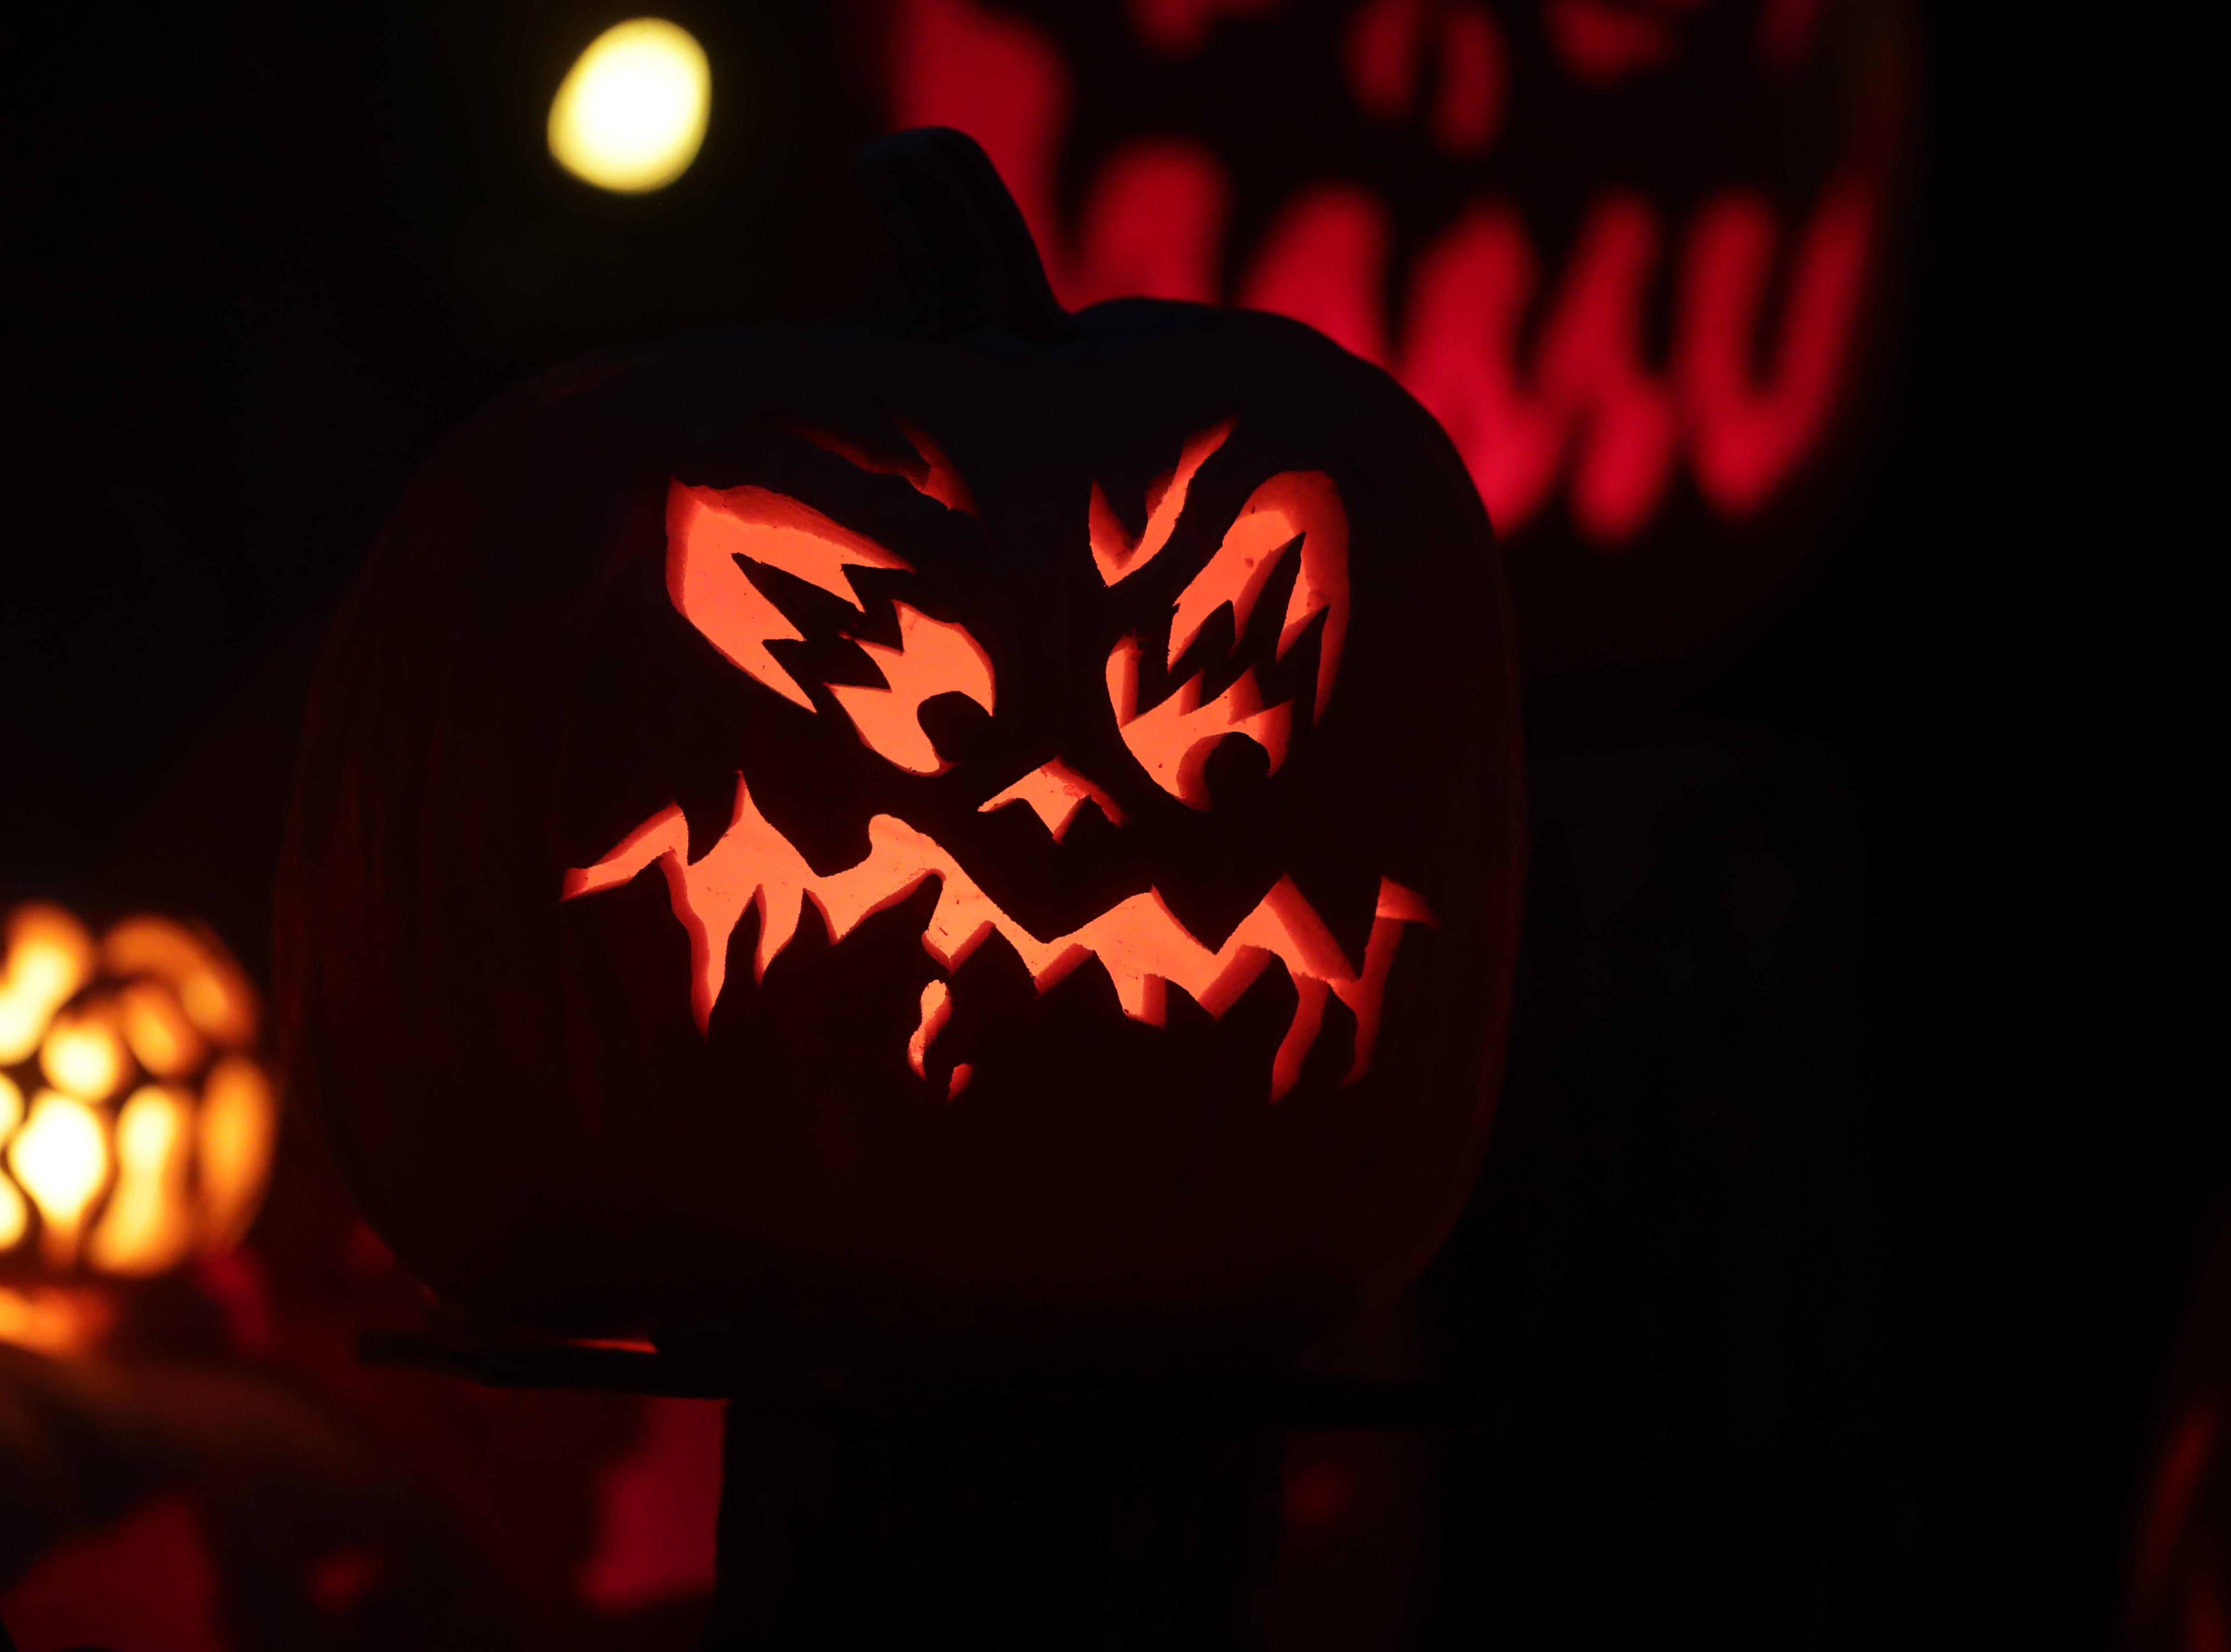 One of the decorative pumpkins at this year's Jack O' Lantern Spectacular.